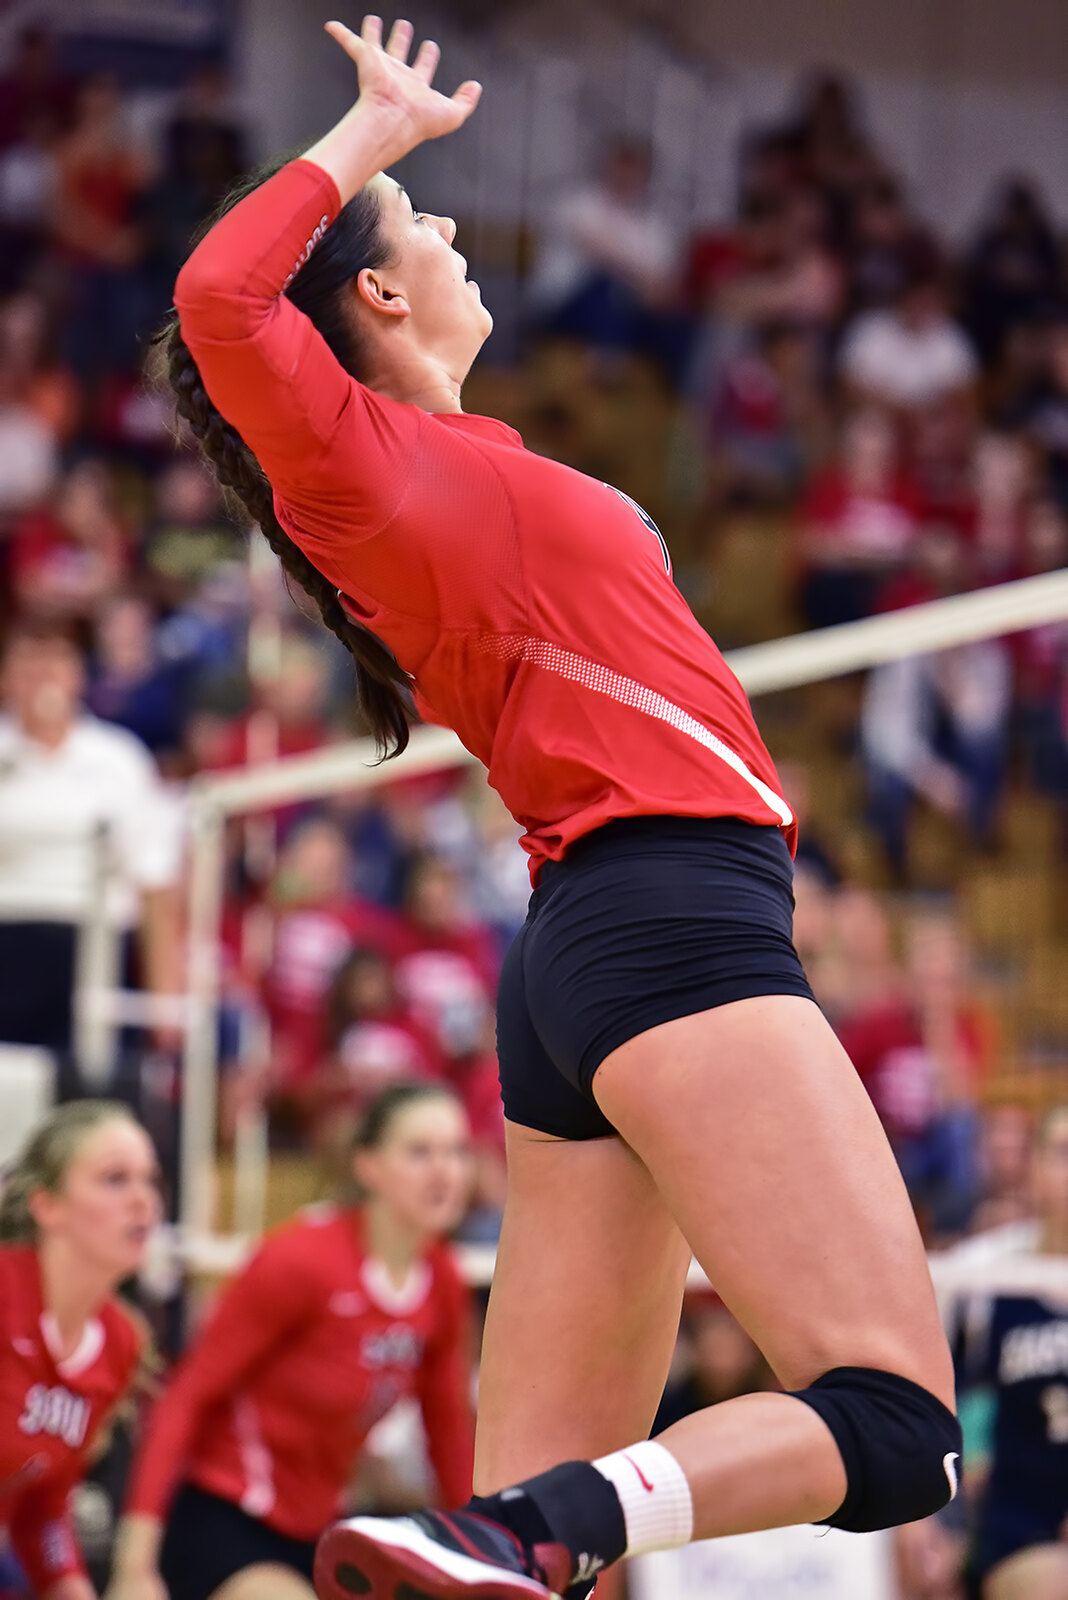 6 Volleyball Skills: The hitter is trying to spike or hit the ball to an open space on the court so the receiving team can score a point. (Al Case)